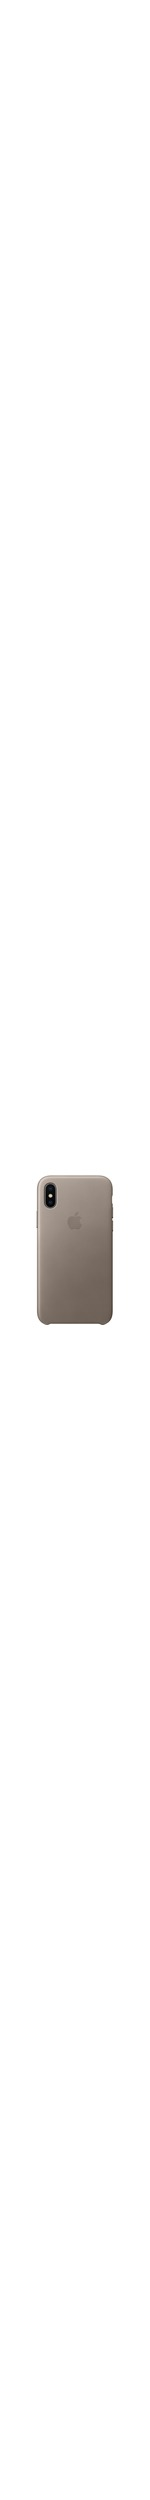 Apple Case for Apple iPhone X Smartphone - Taupe